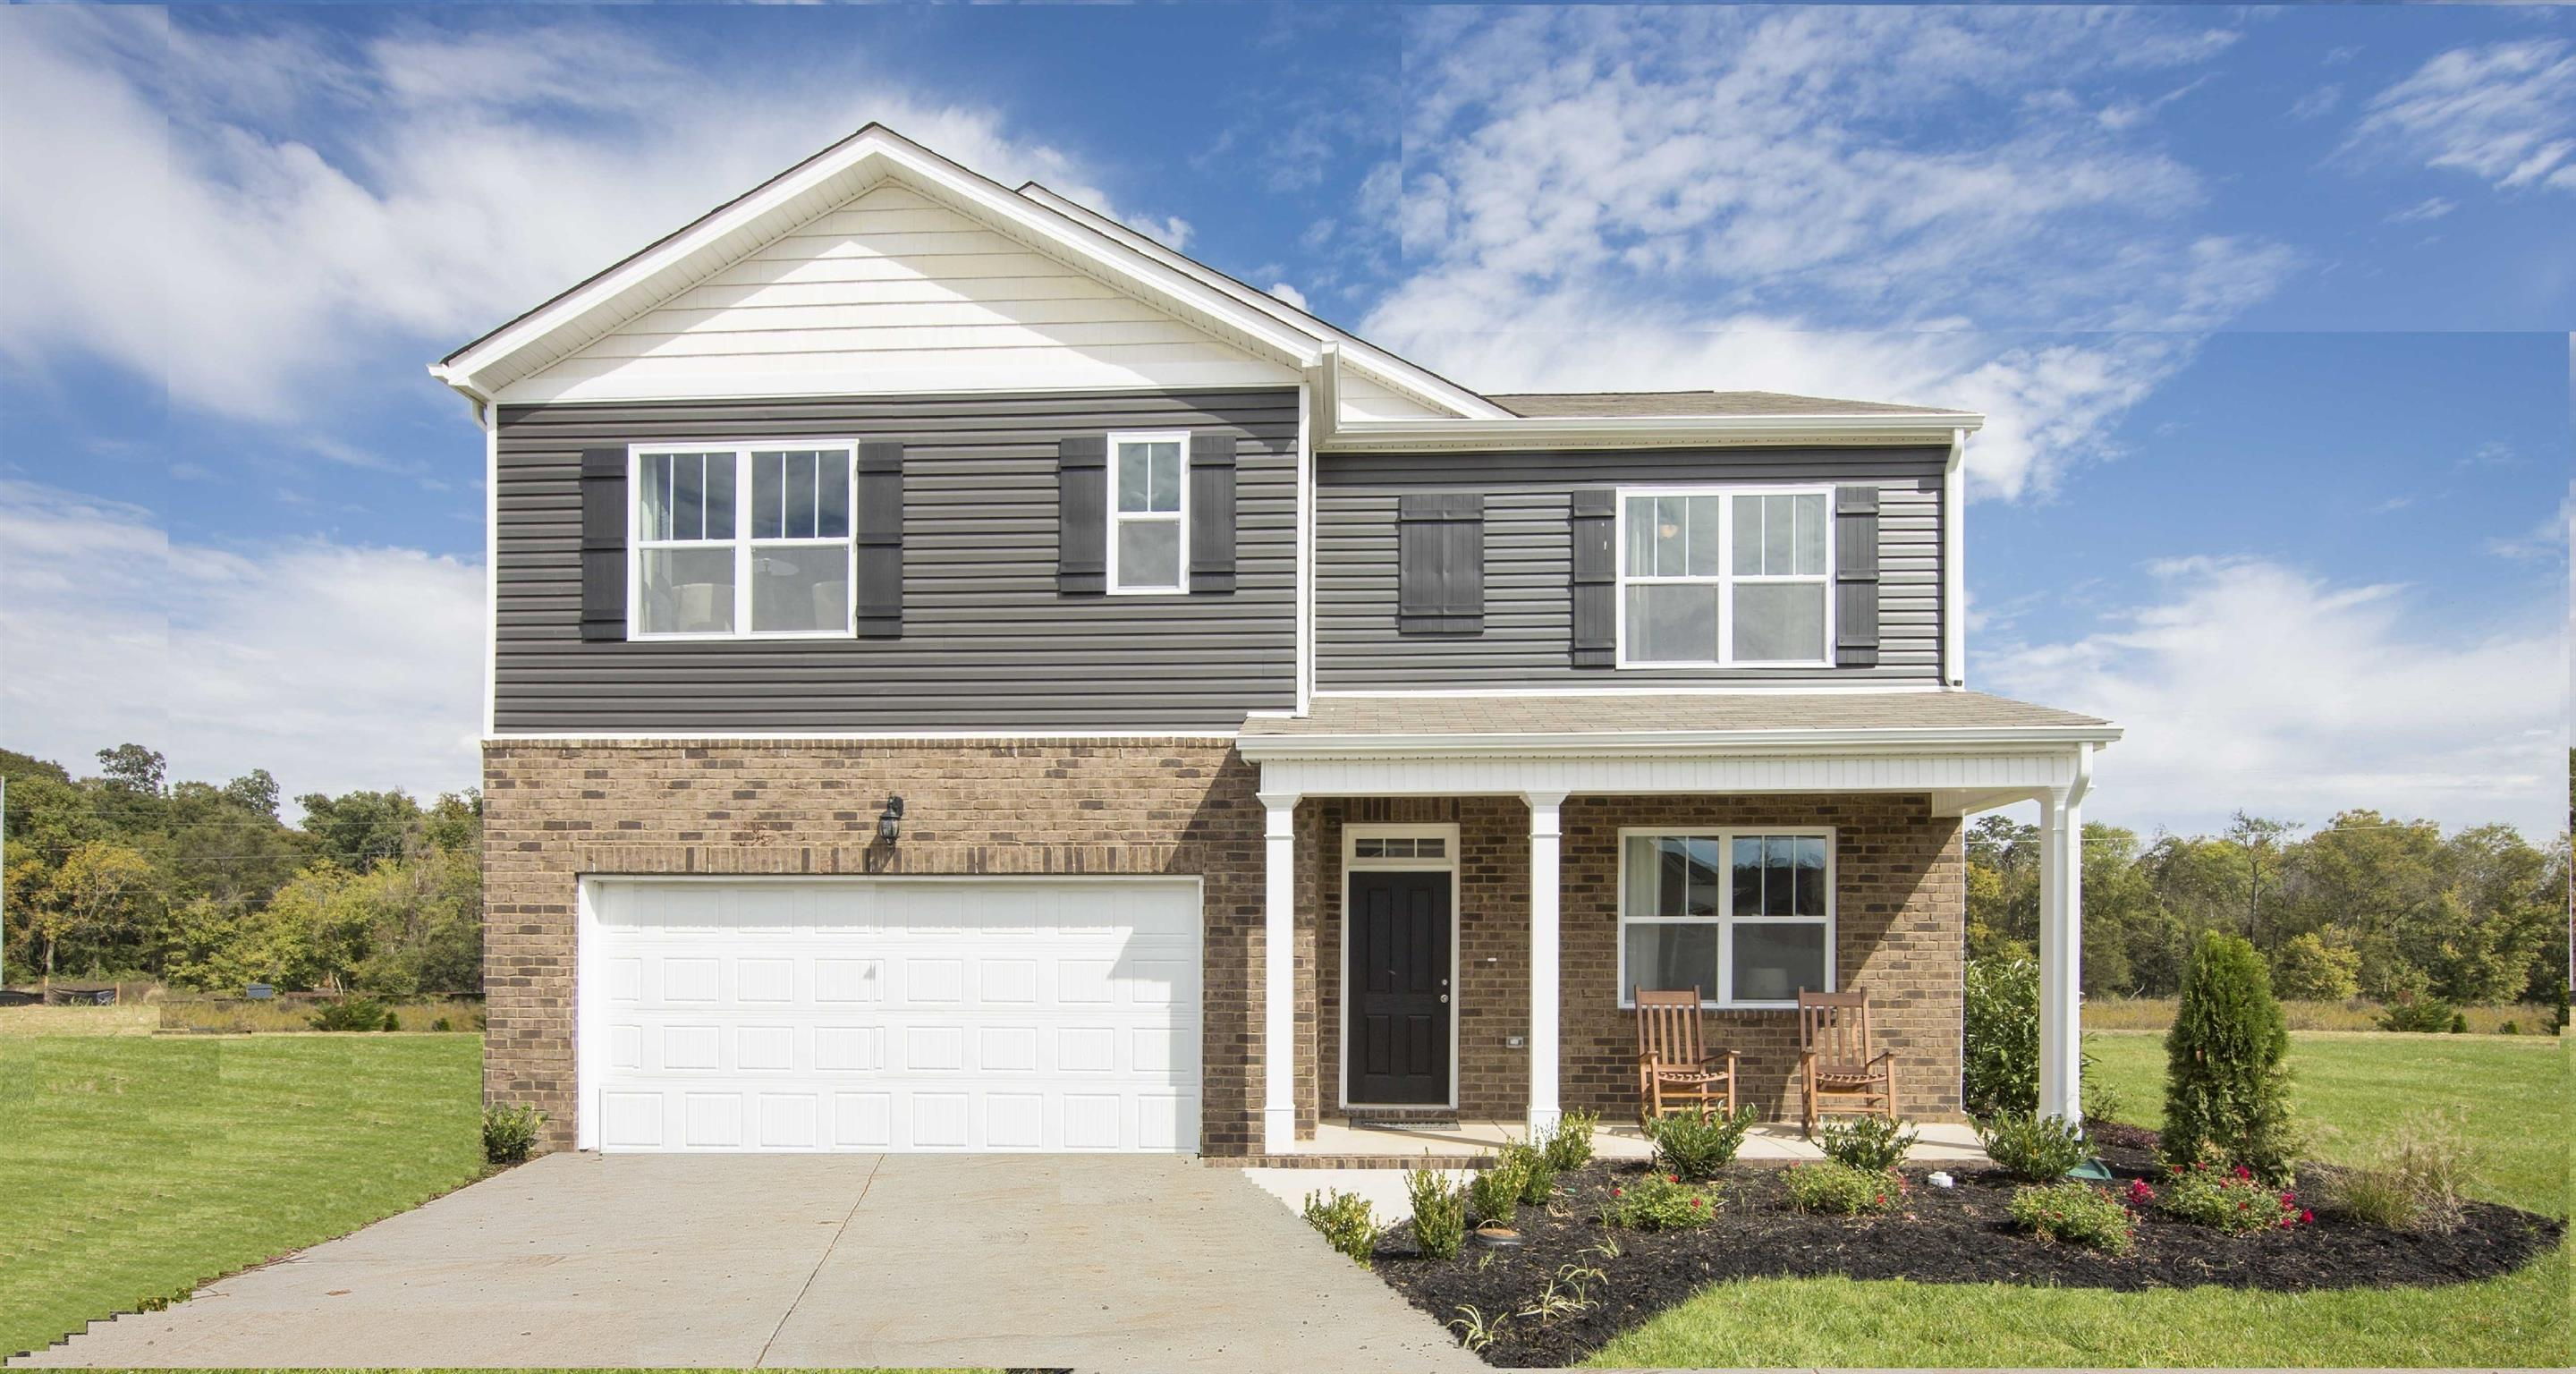 1312 Sylvan Park Drive 344, Spring Hill, TN 37174 - Spring Hill, TN real estate listing